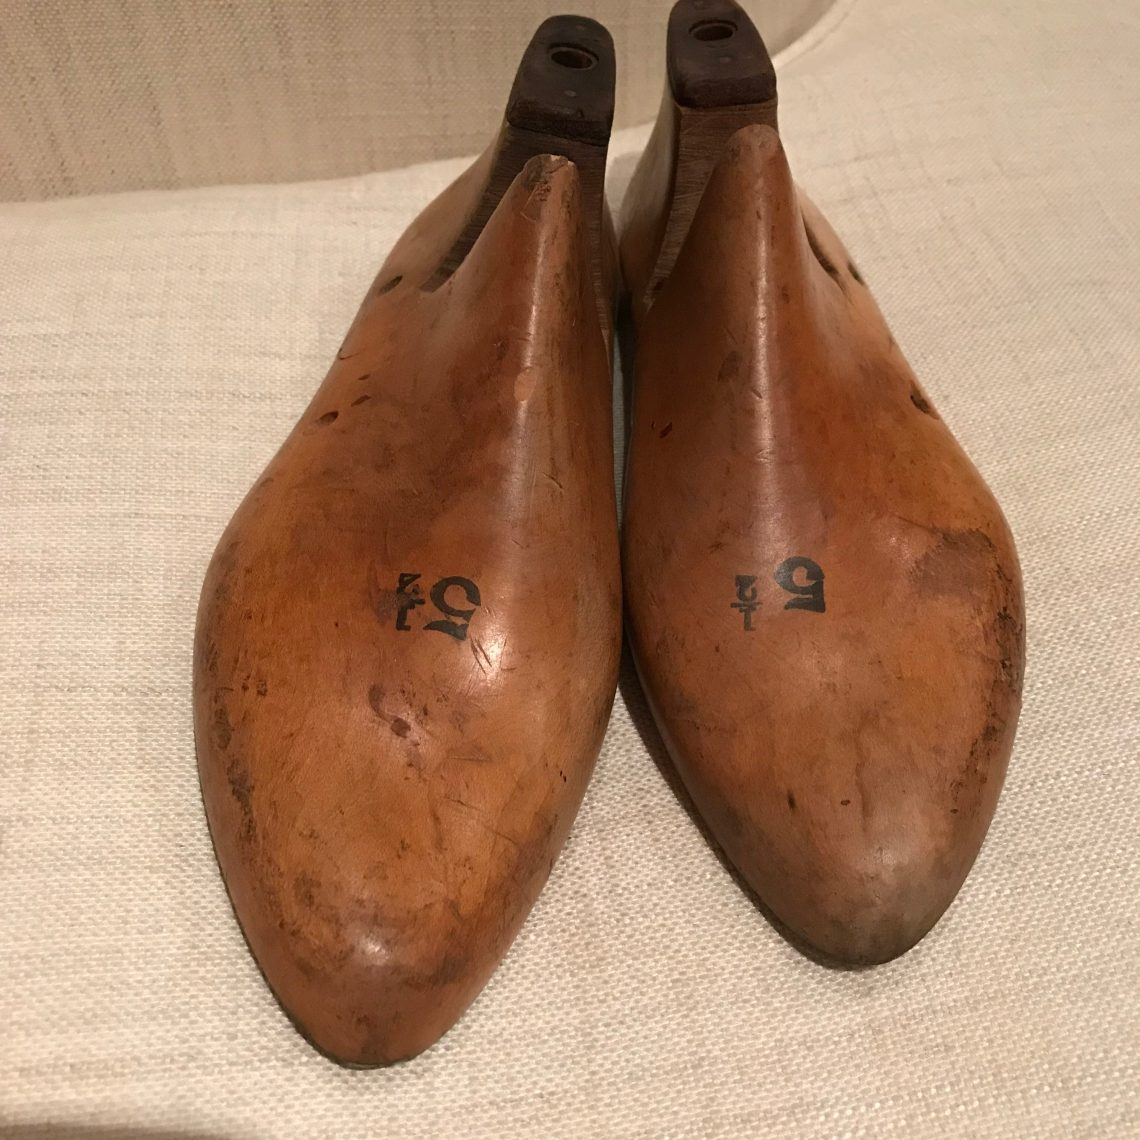 Vintage wooden shoe lasts